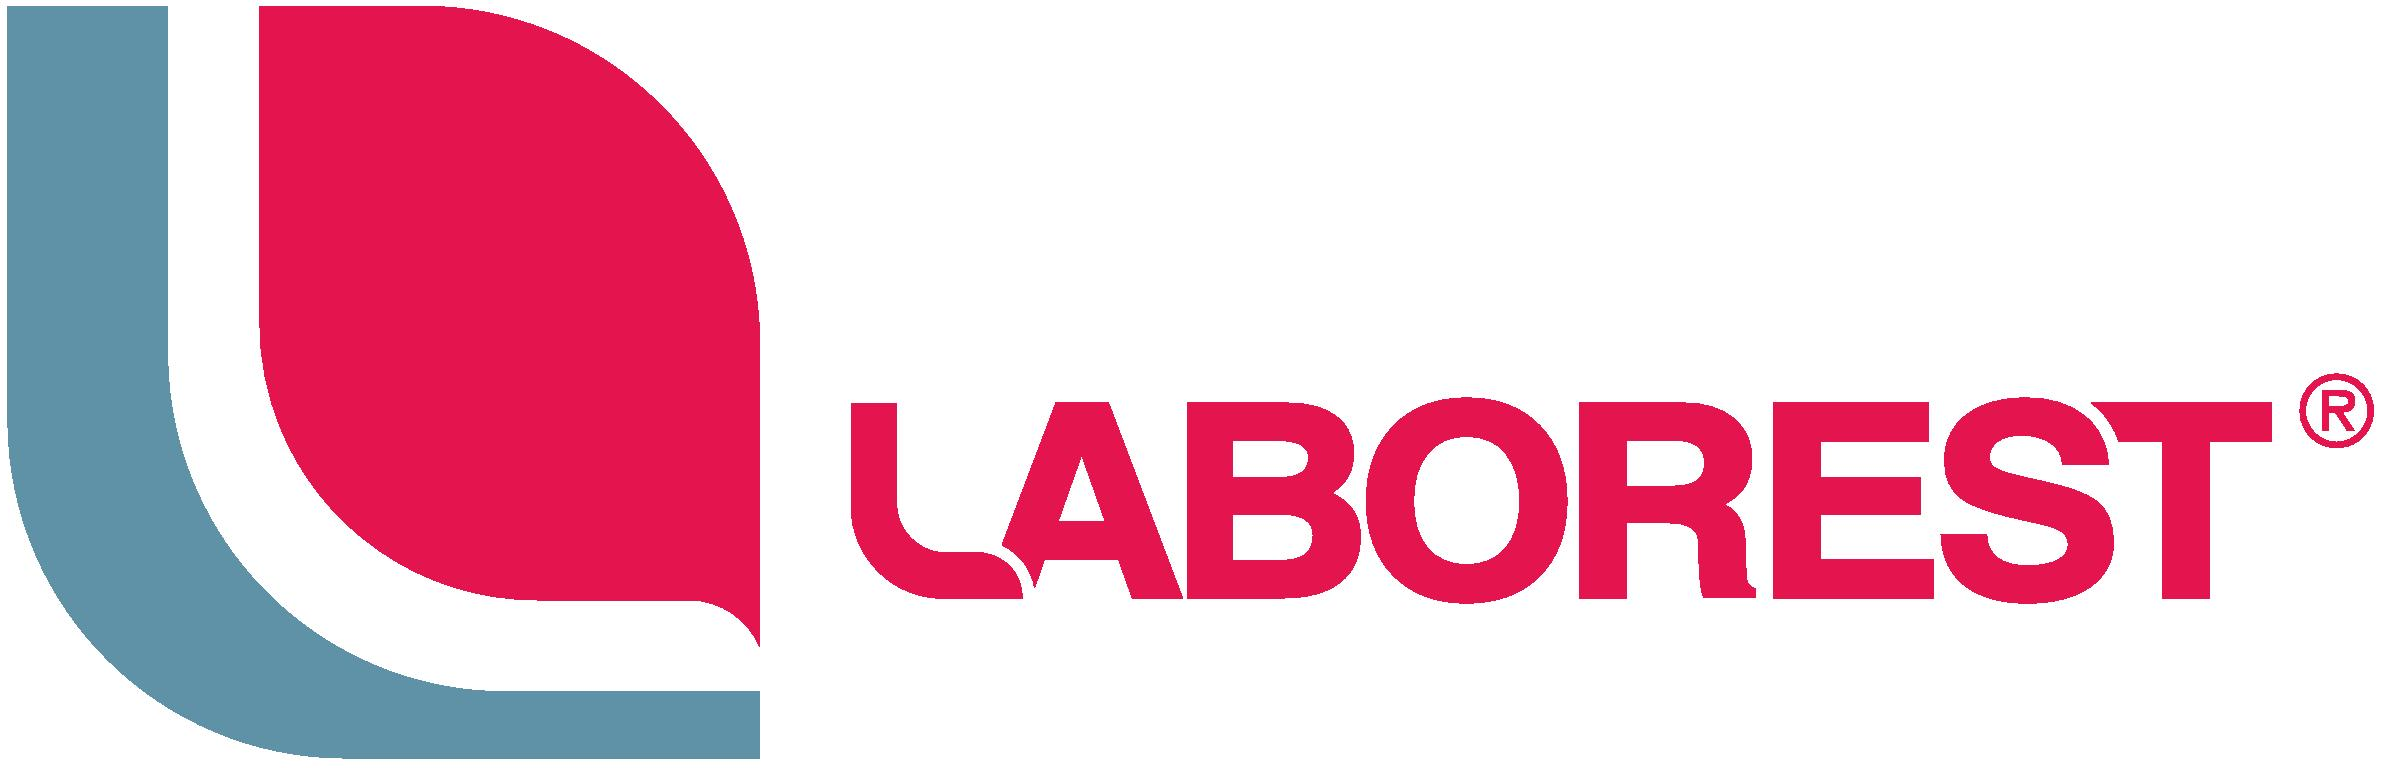 Laborest%20Logo.png